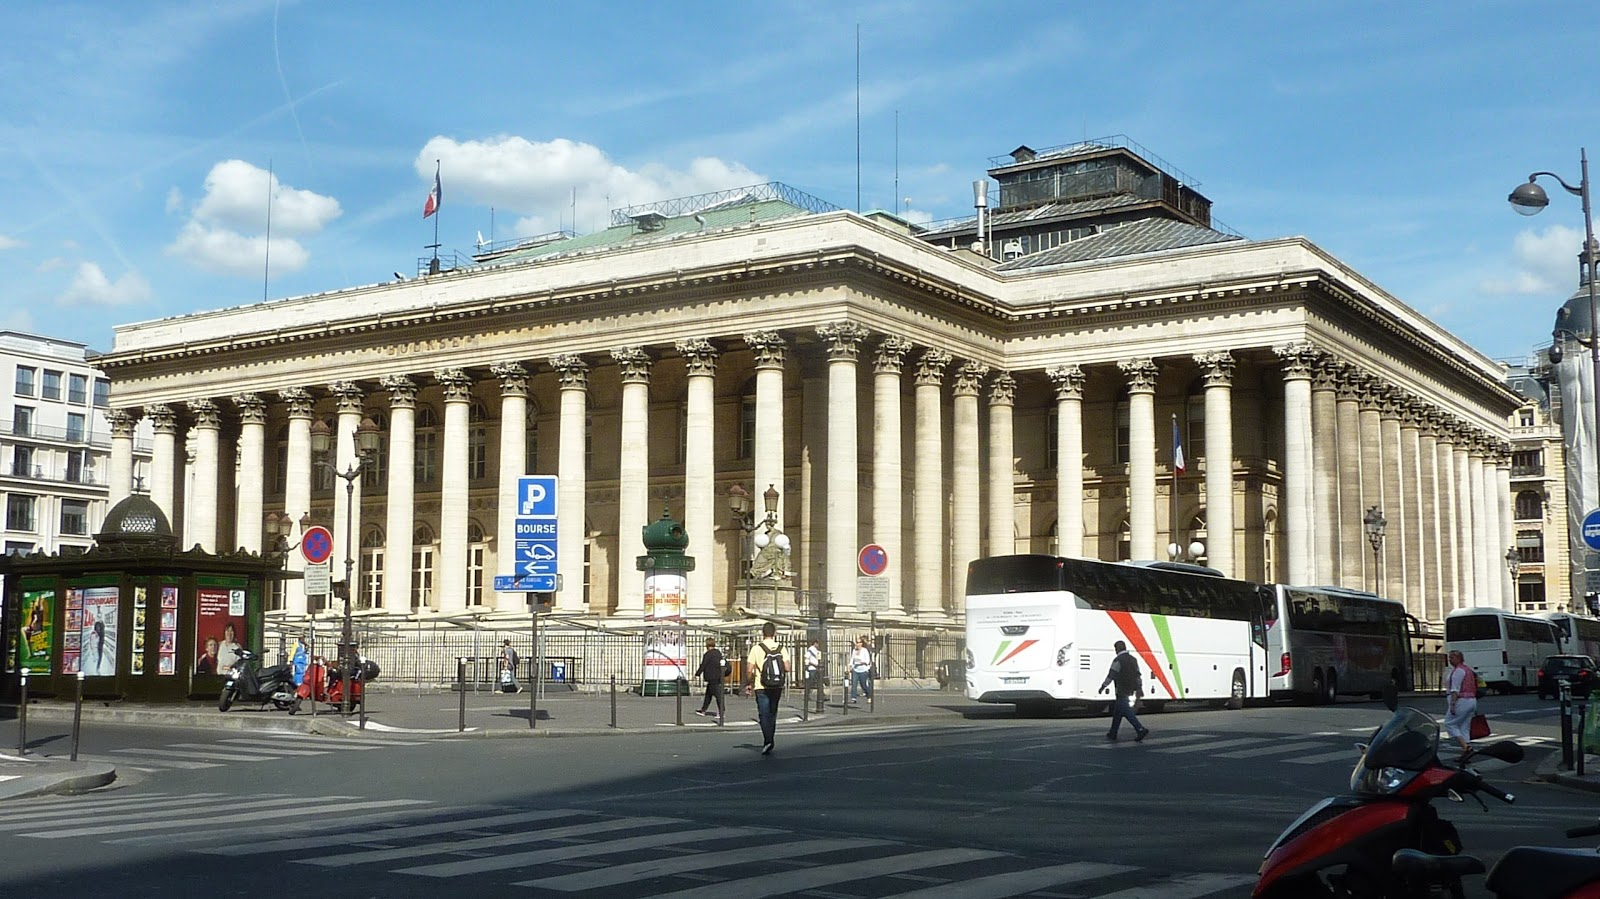 The exterior of the Paris Bourse has hardly changed since 1905